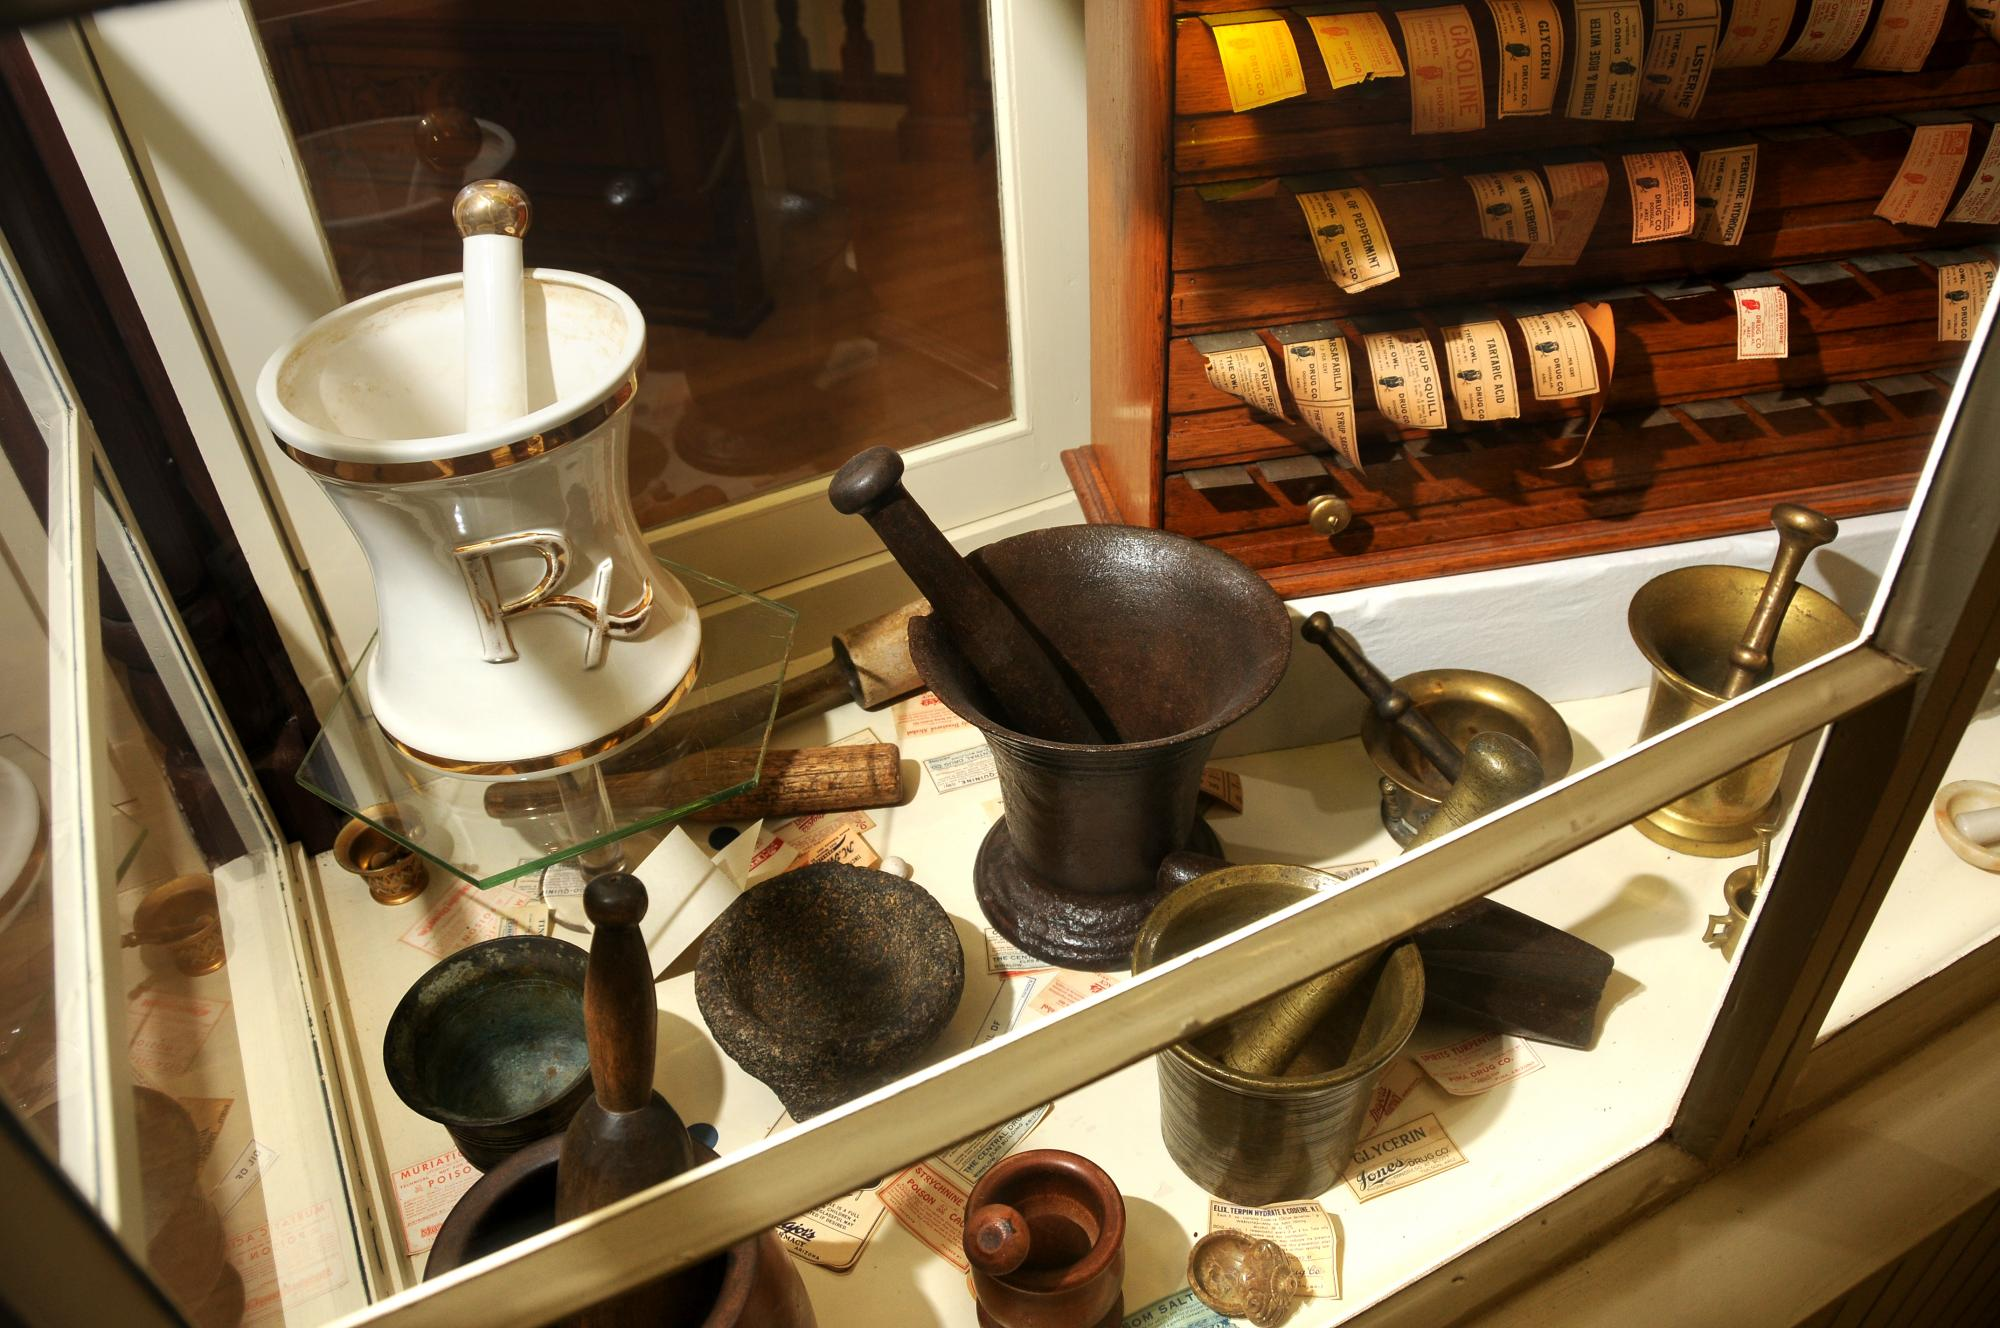 It is the 50-year anniversary of the History of Pharmacy Museum, which opened in 1966. Split between the College of Pharmacy and the Roy P. Drachman Hall, the museum includes original drug containers, books, store fixtures and other artifacts dating back